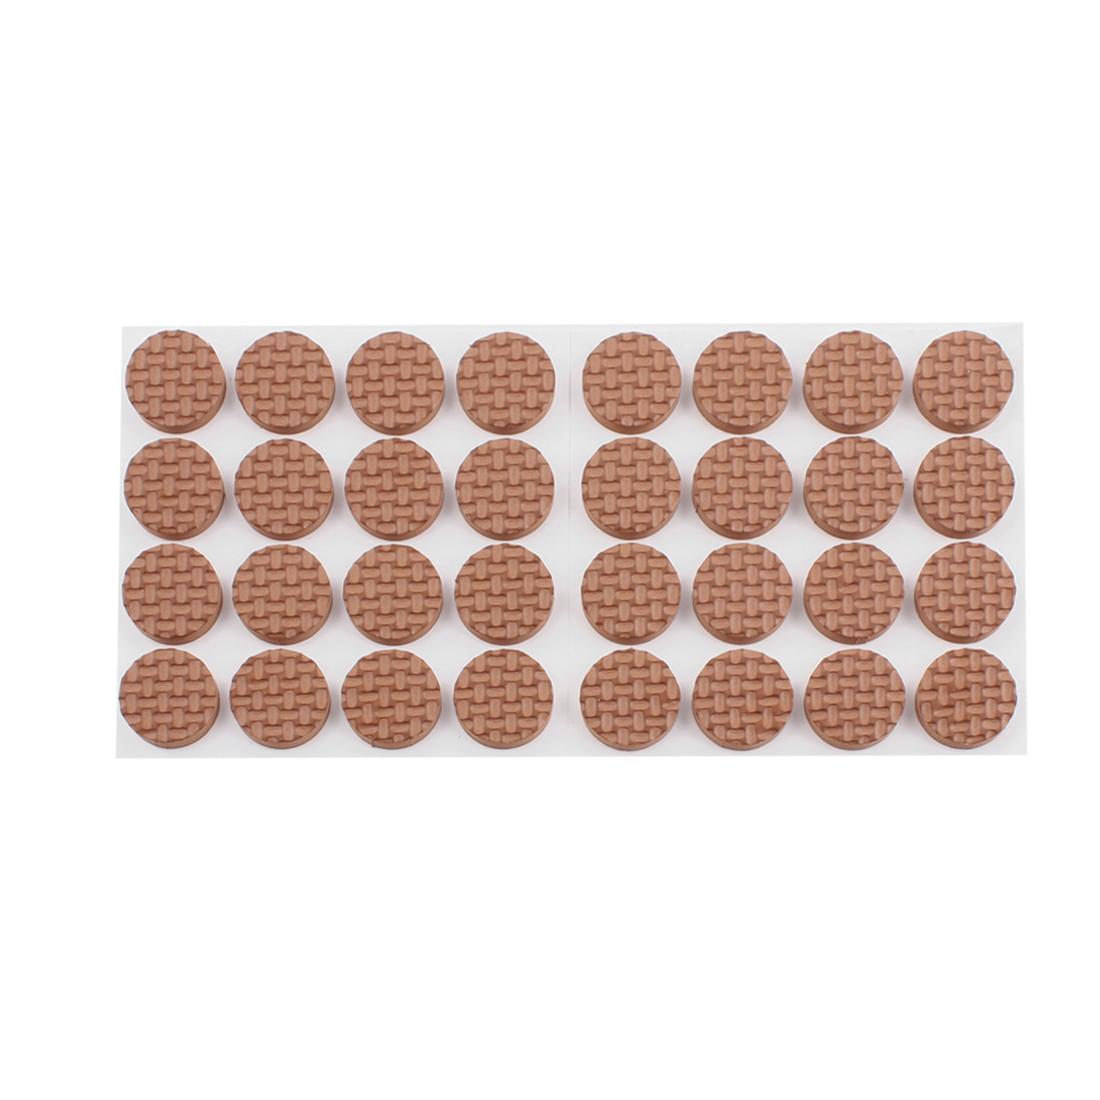 Self Adhesive Scratch Protection Furniture Floor Round Pad Brown 32pcs